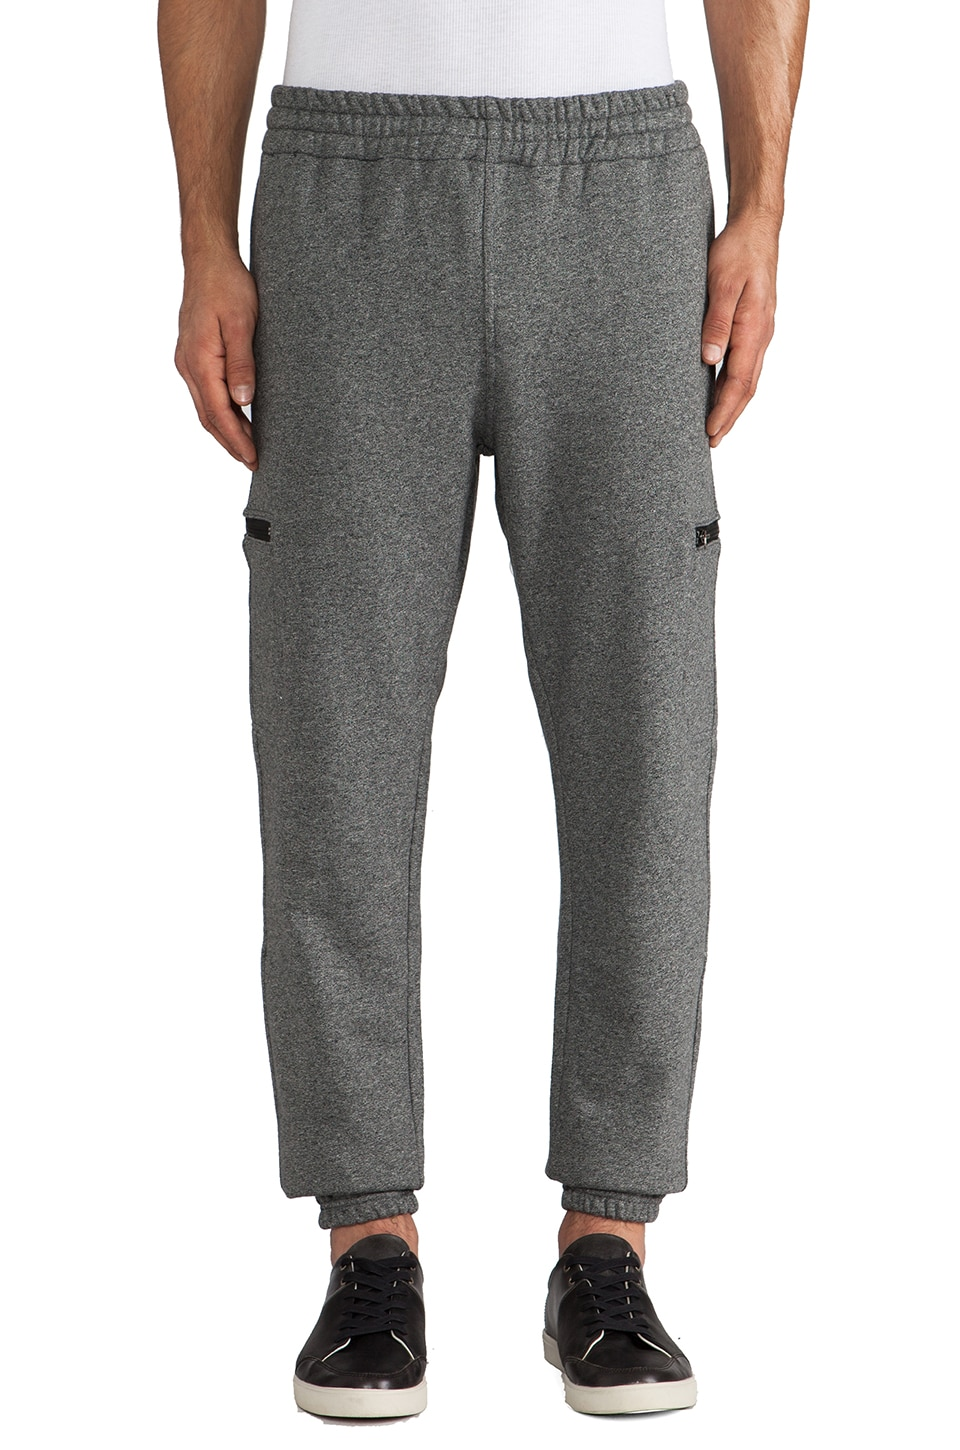 Shades of Grey by Micah Cohen Cargo Sweatpant in Heather Graphite